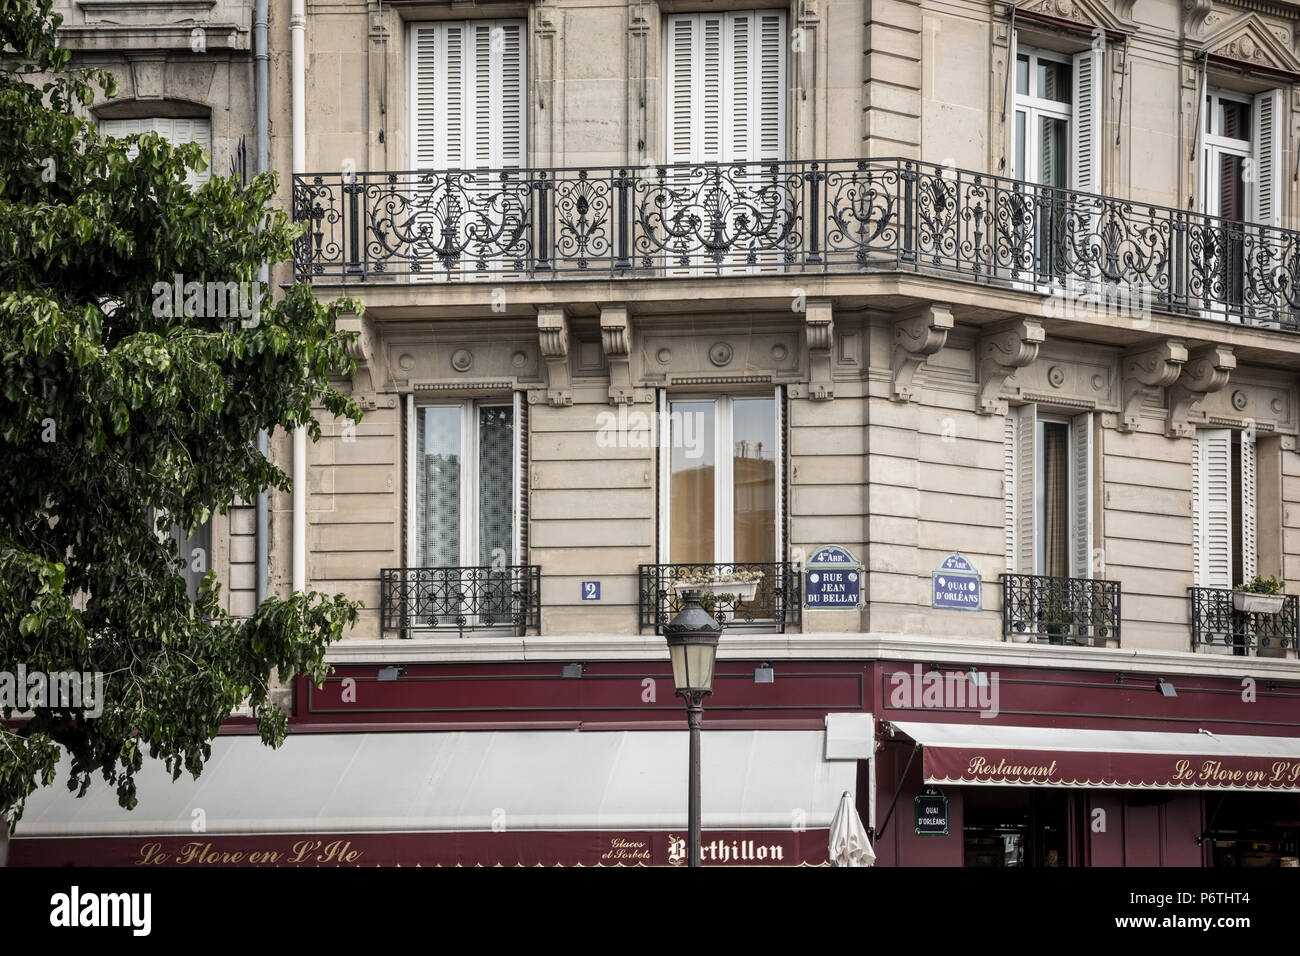 Cafe and building detail, Paris, France - Stock Image